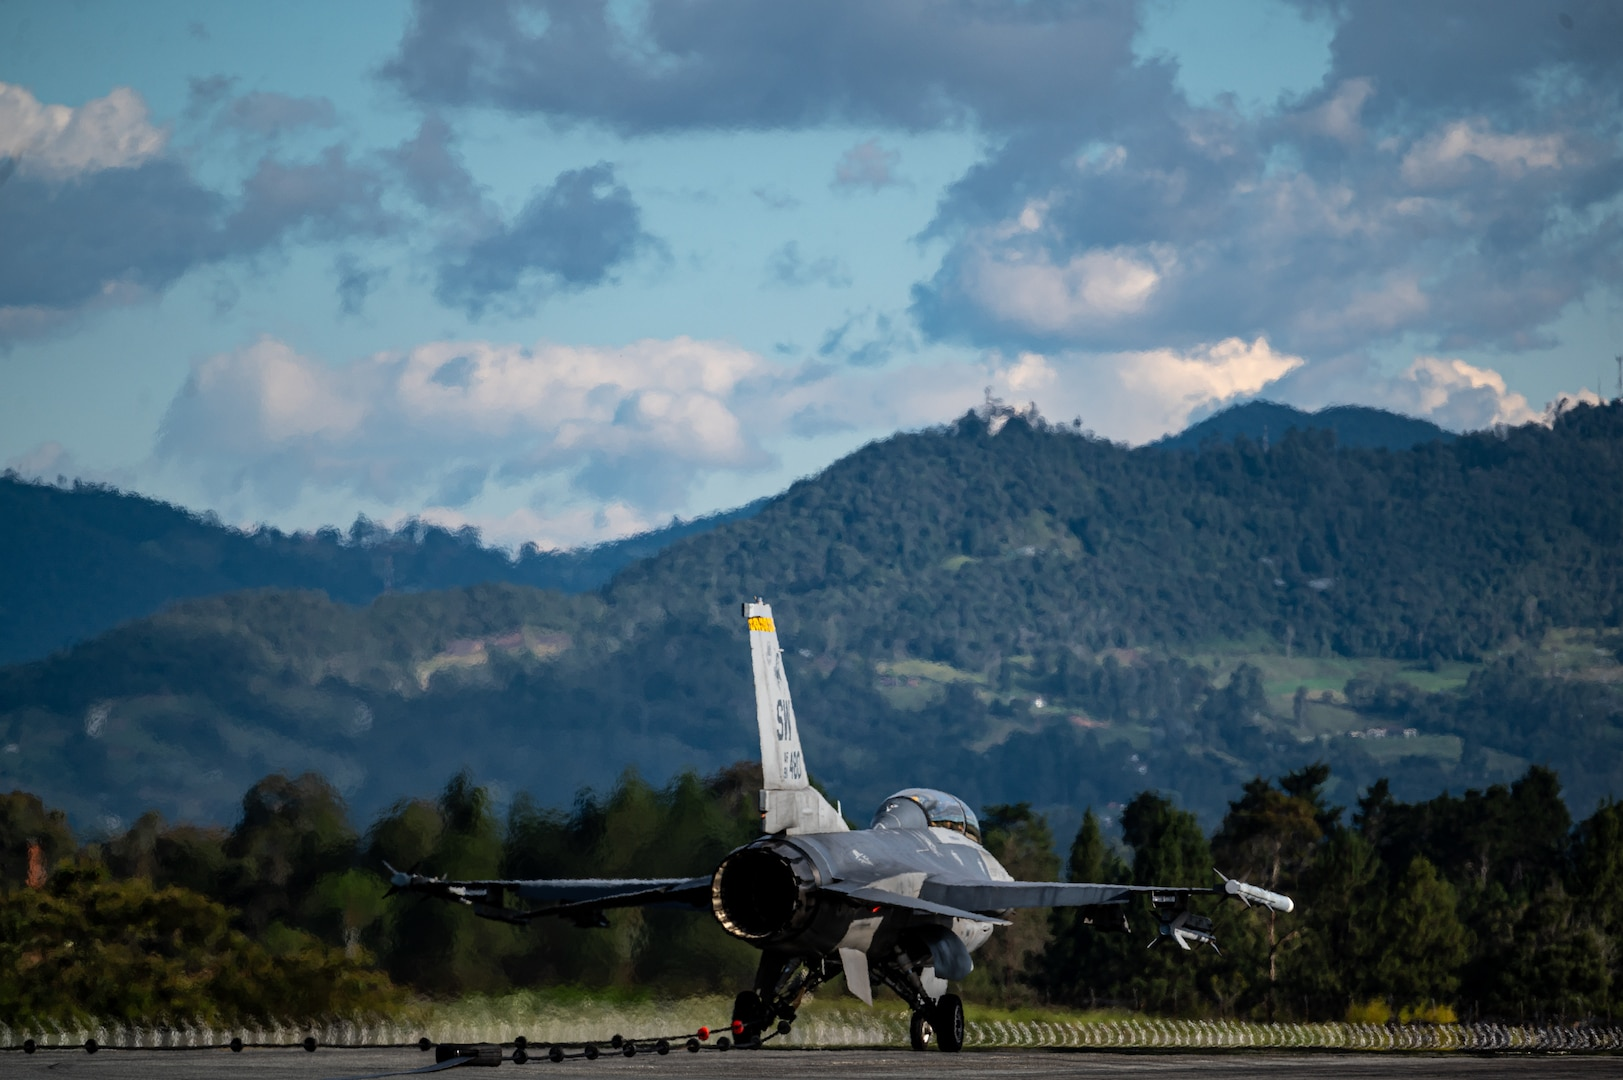 F-16s along with personnel from Shaw AFB will rapidly integrate into theater training, as well as joint, coalition and partnered missions.